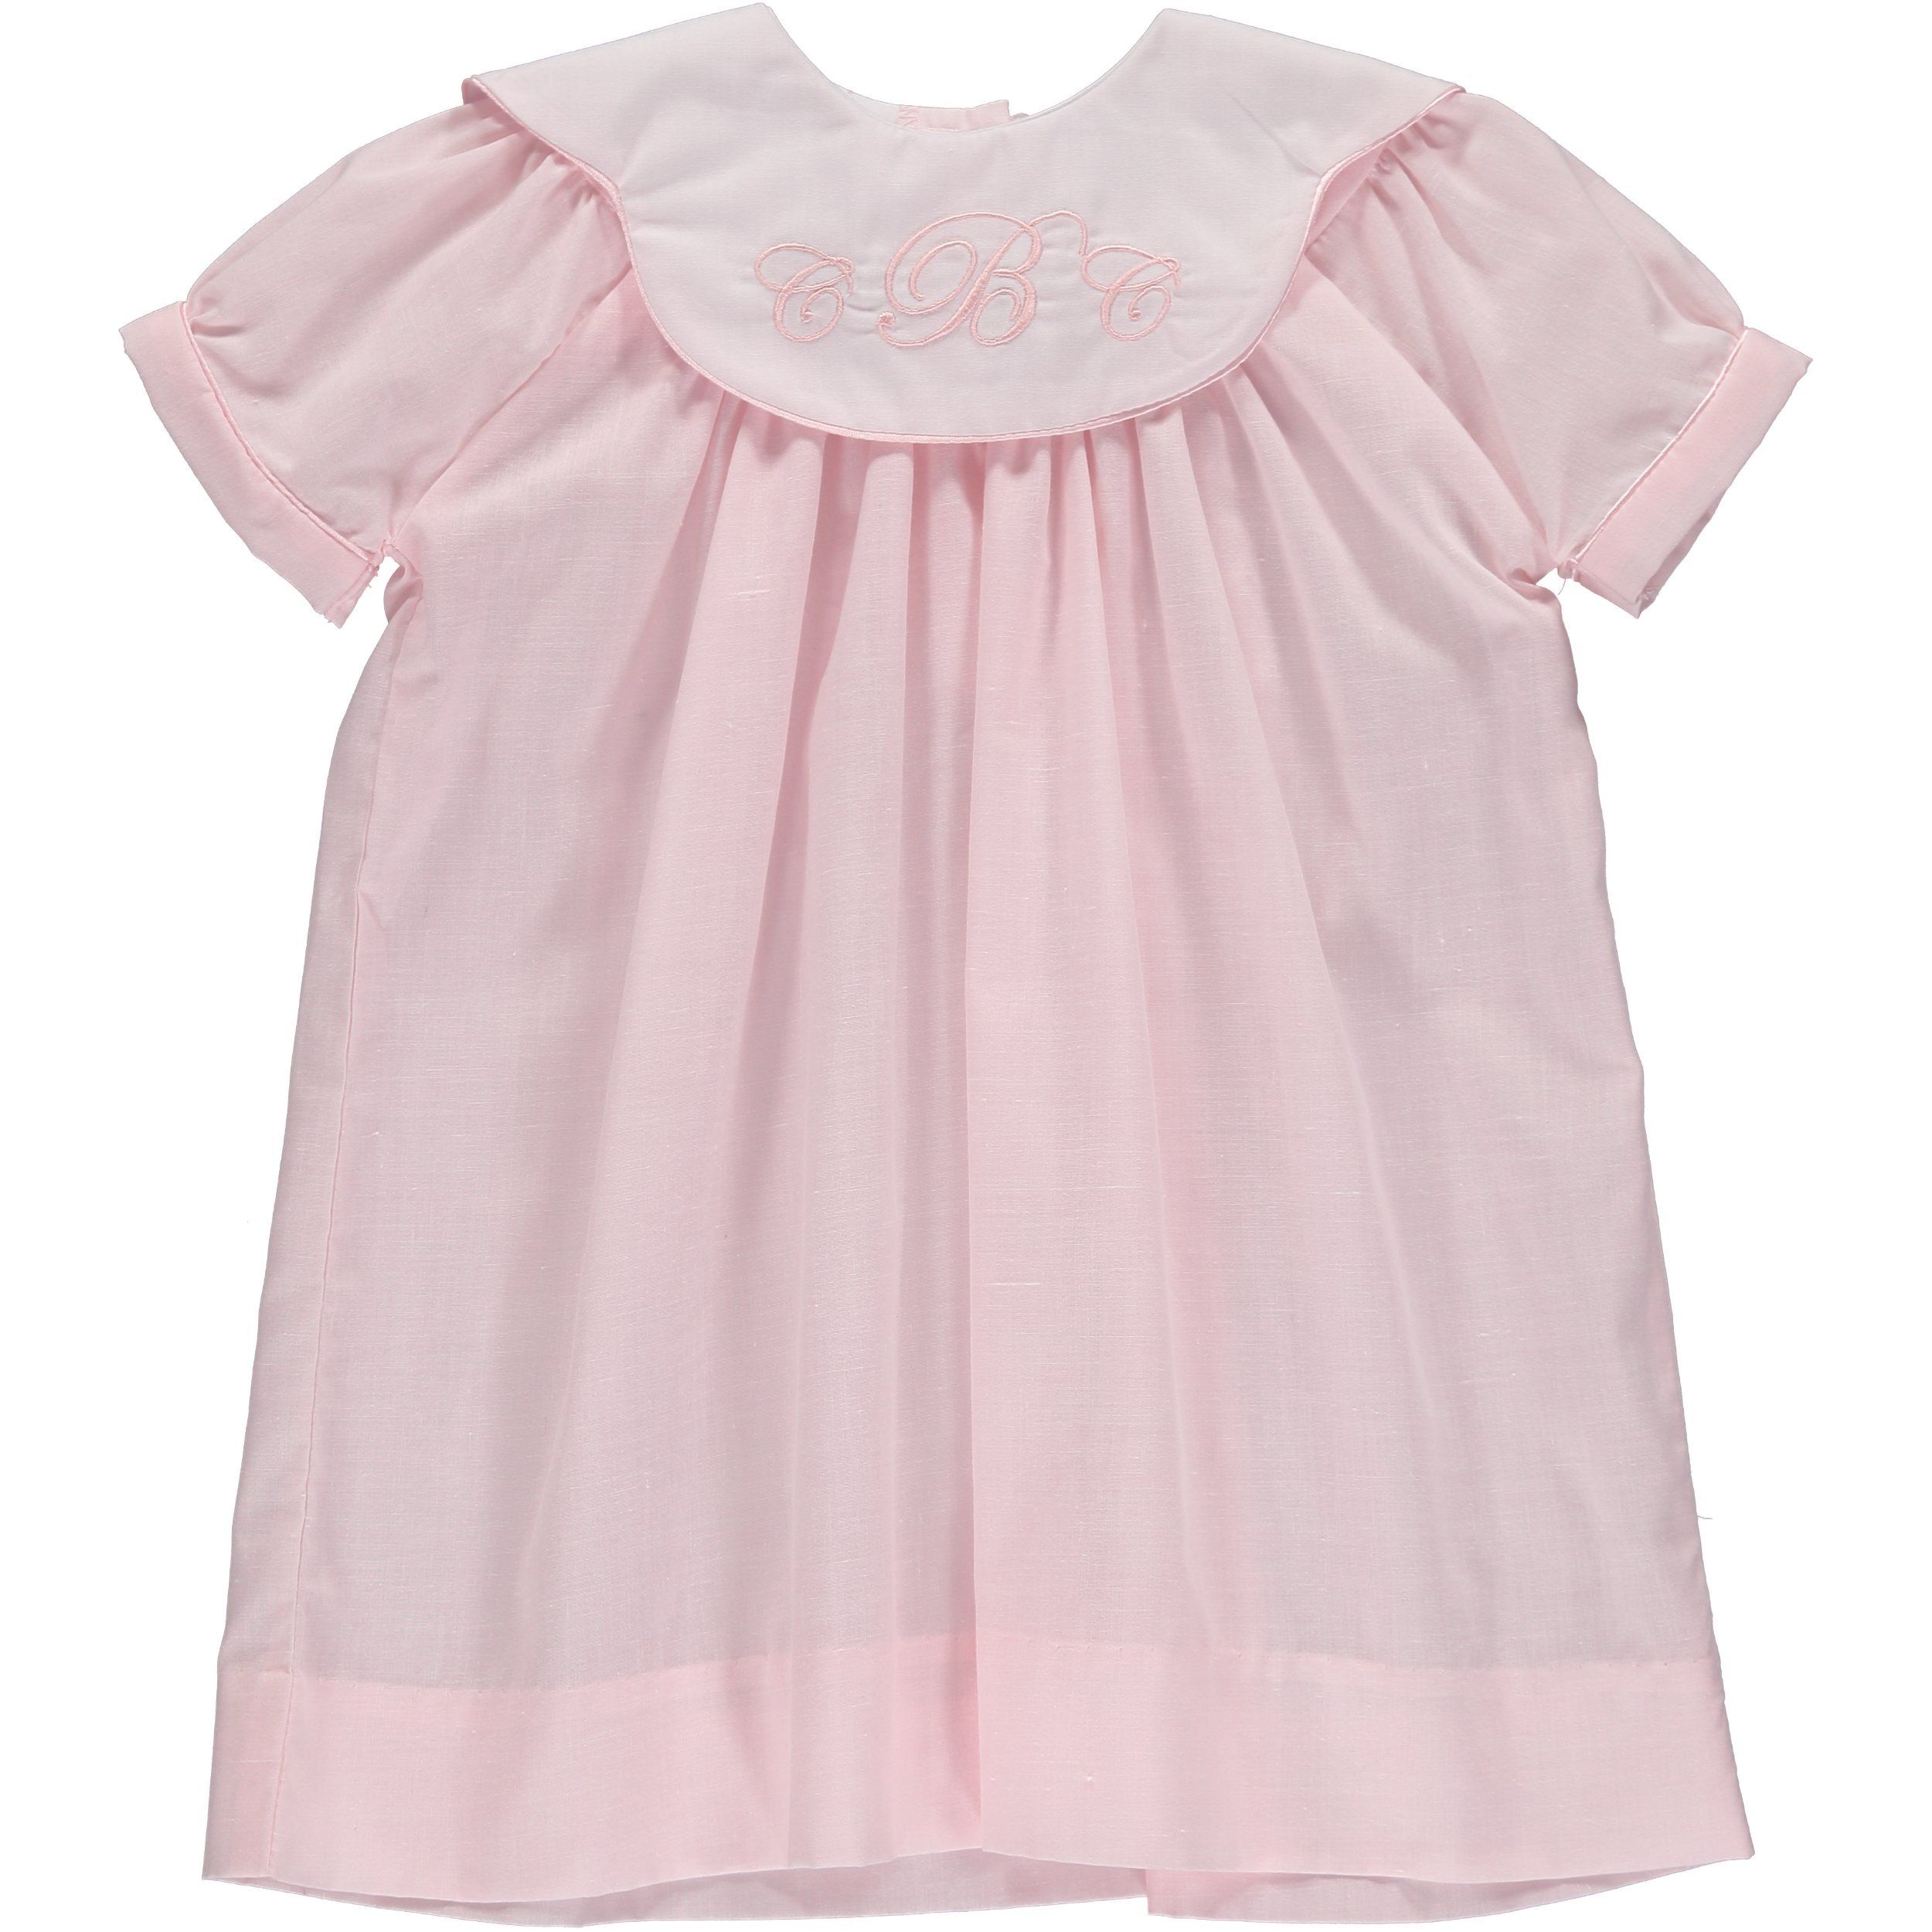 ee9ec9fd Carriage Boutique Baby Girl Classic Monogram Blank Bishop Dress Pink/White  Collar 6M * Click photo for even more information. (This is an affiliate  link).